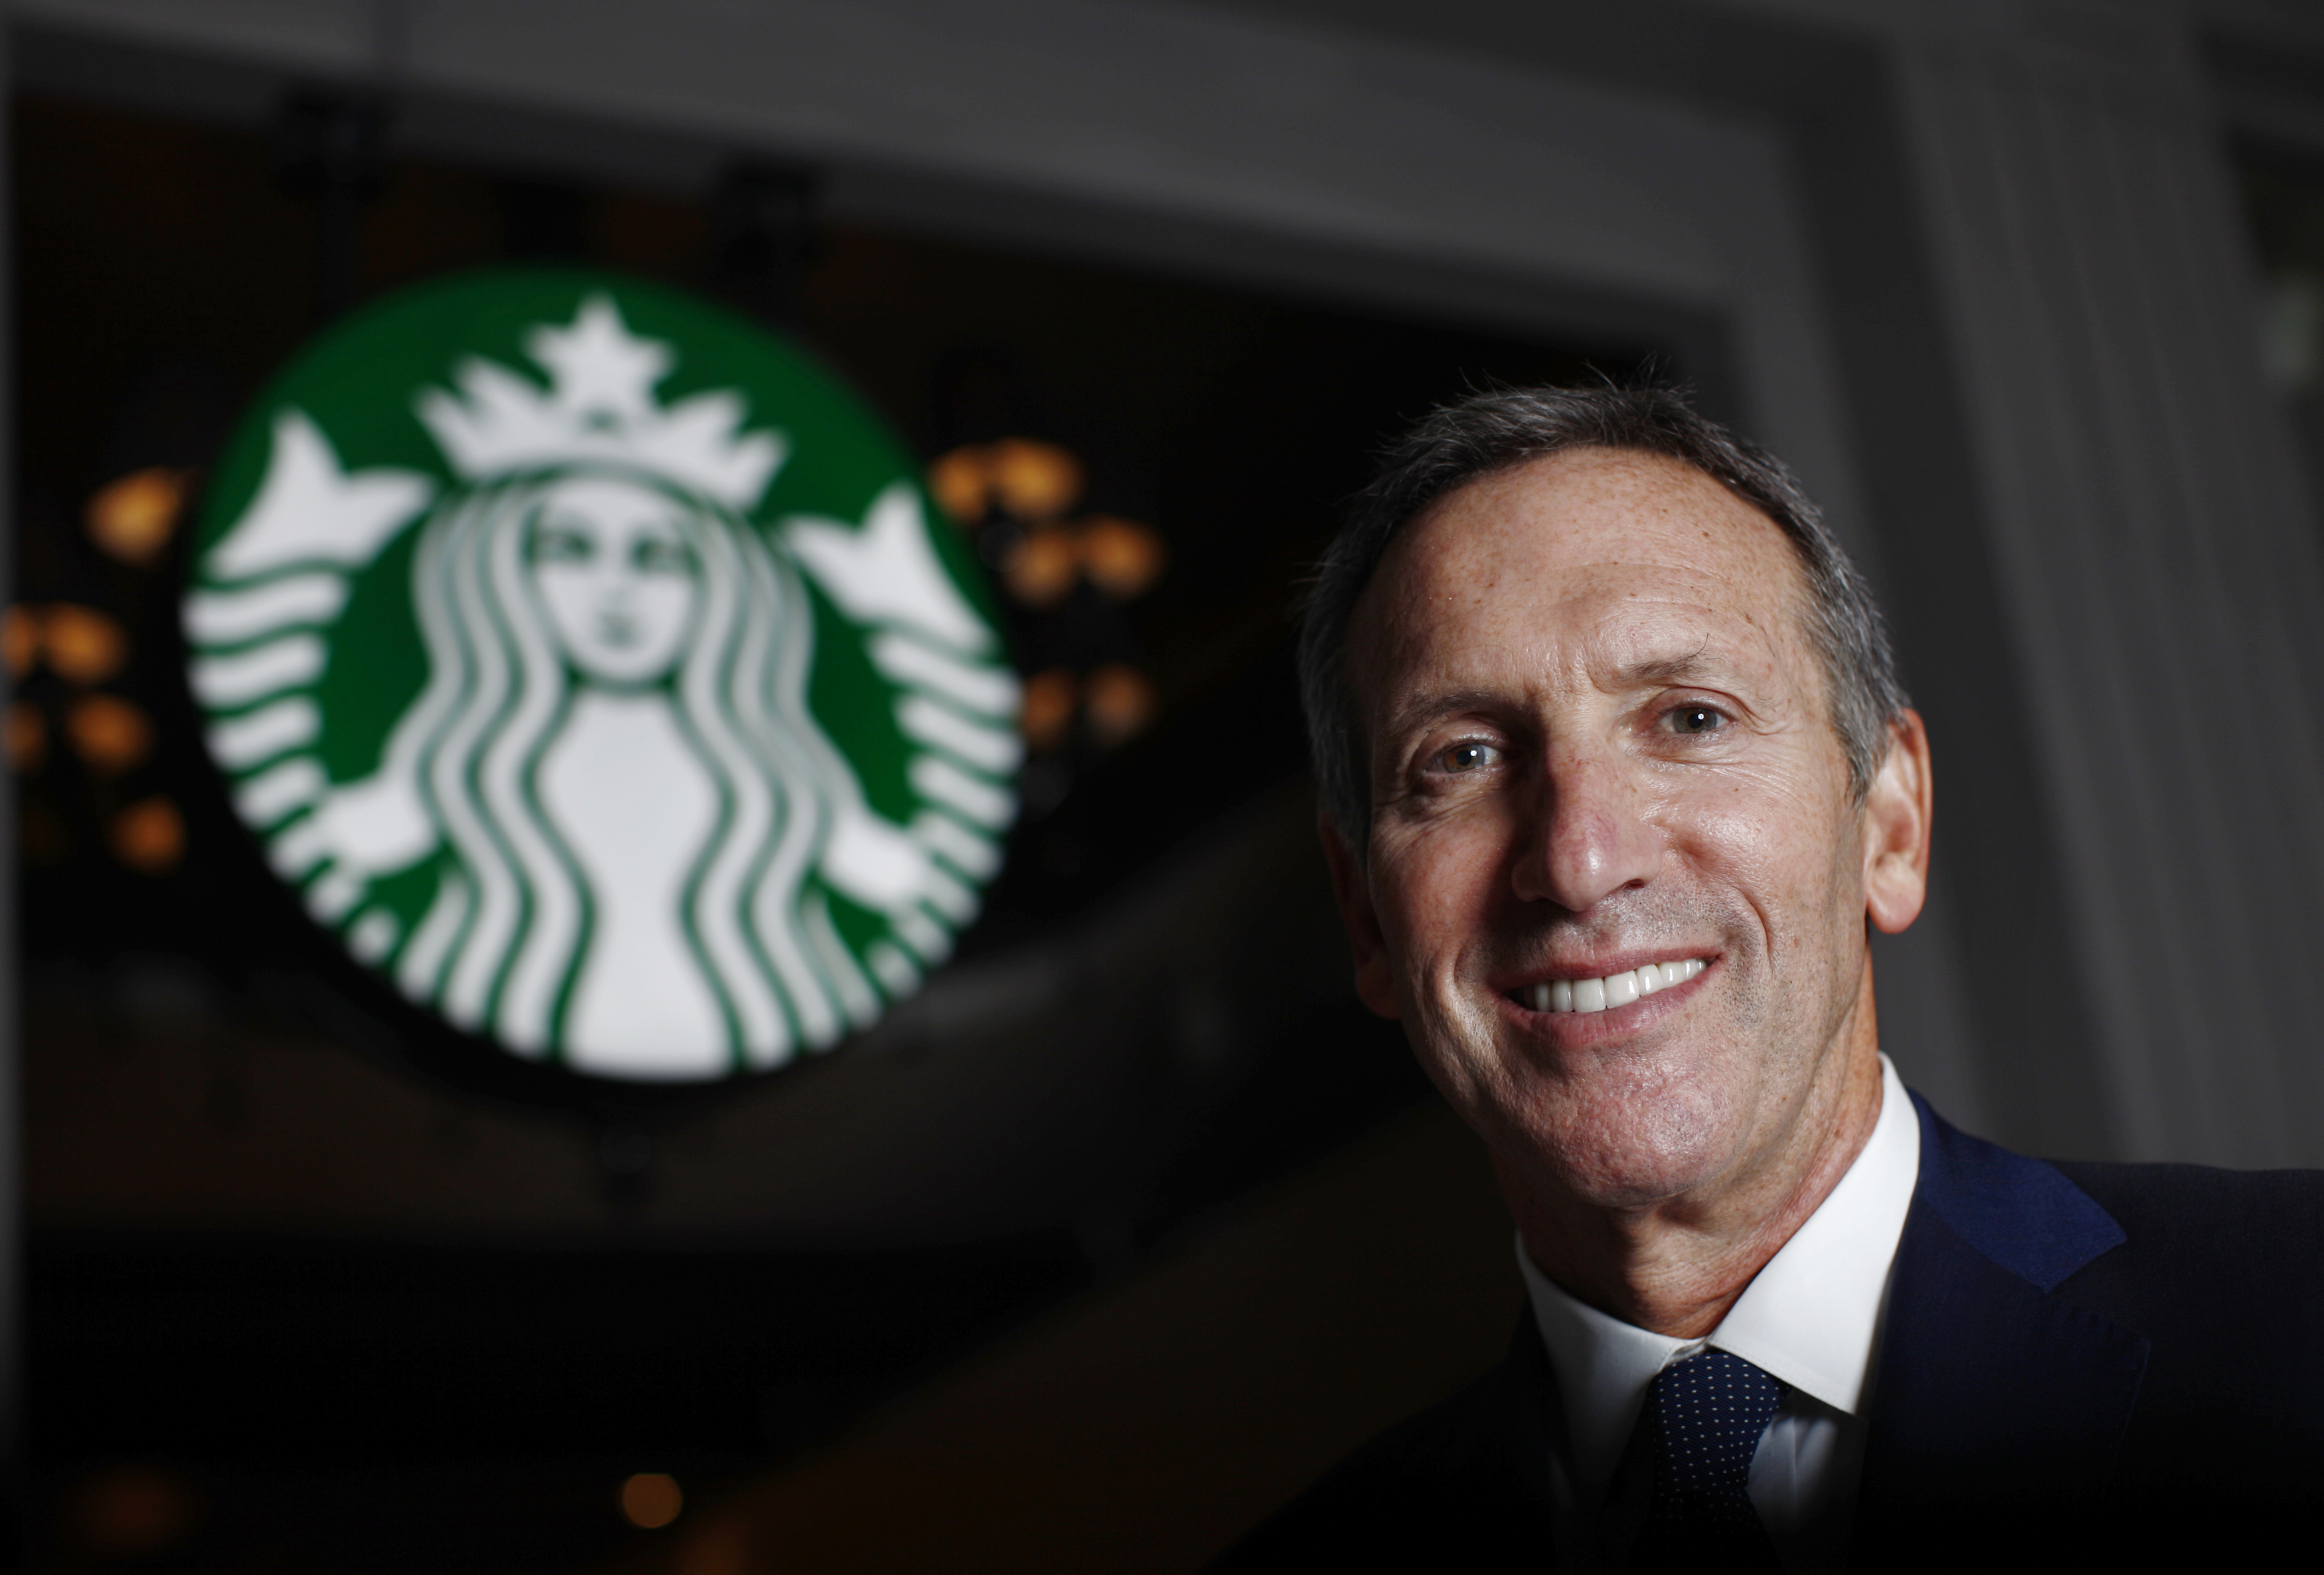 Howard Schultz CEO of Starbucks poses during an interview with Reuters in Shanghai